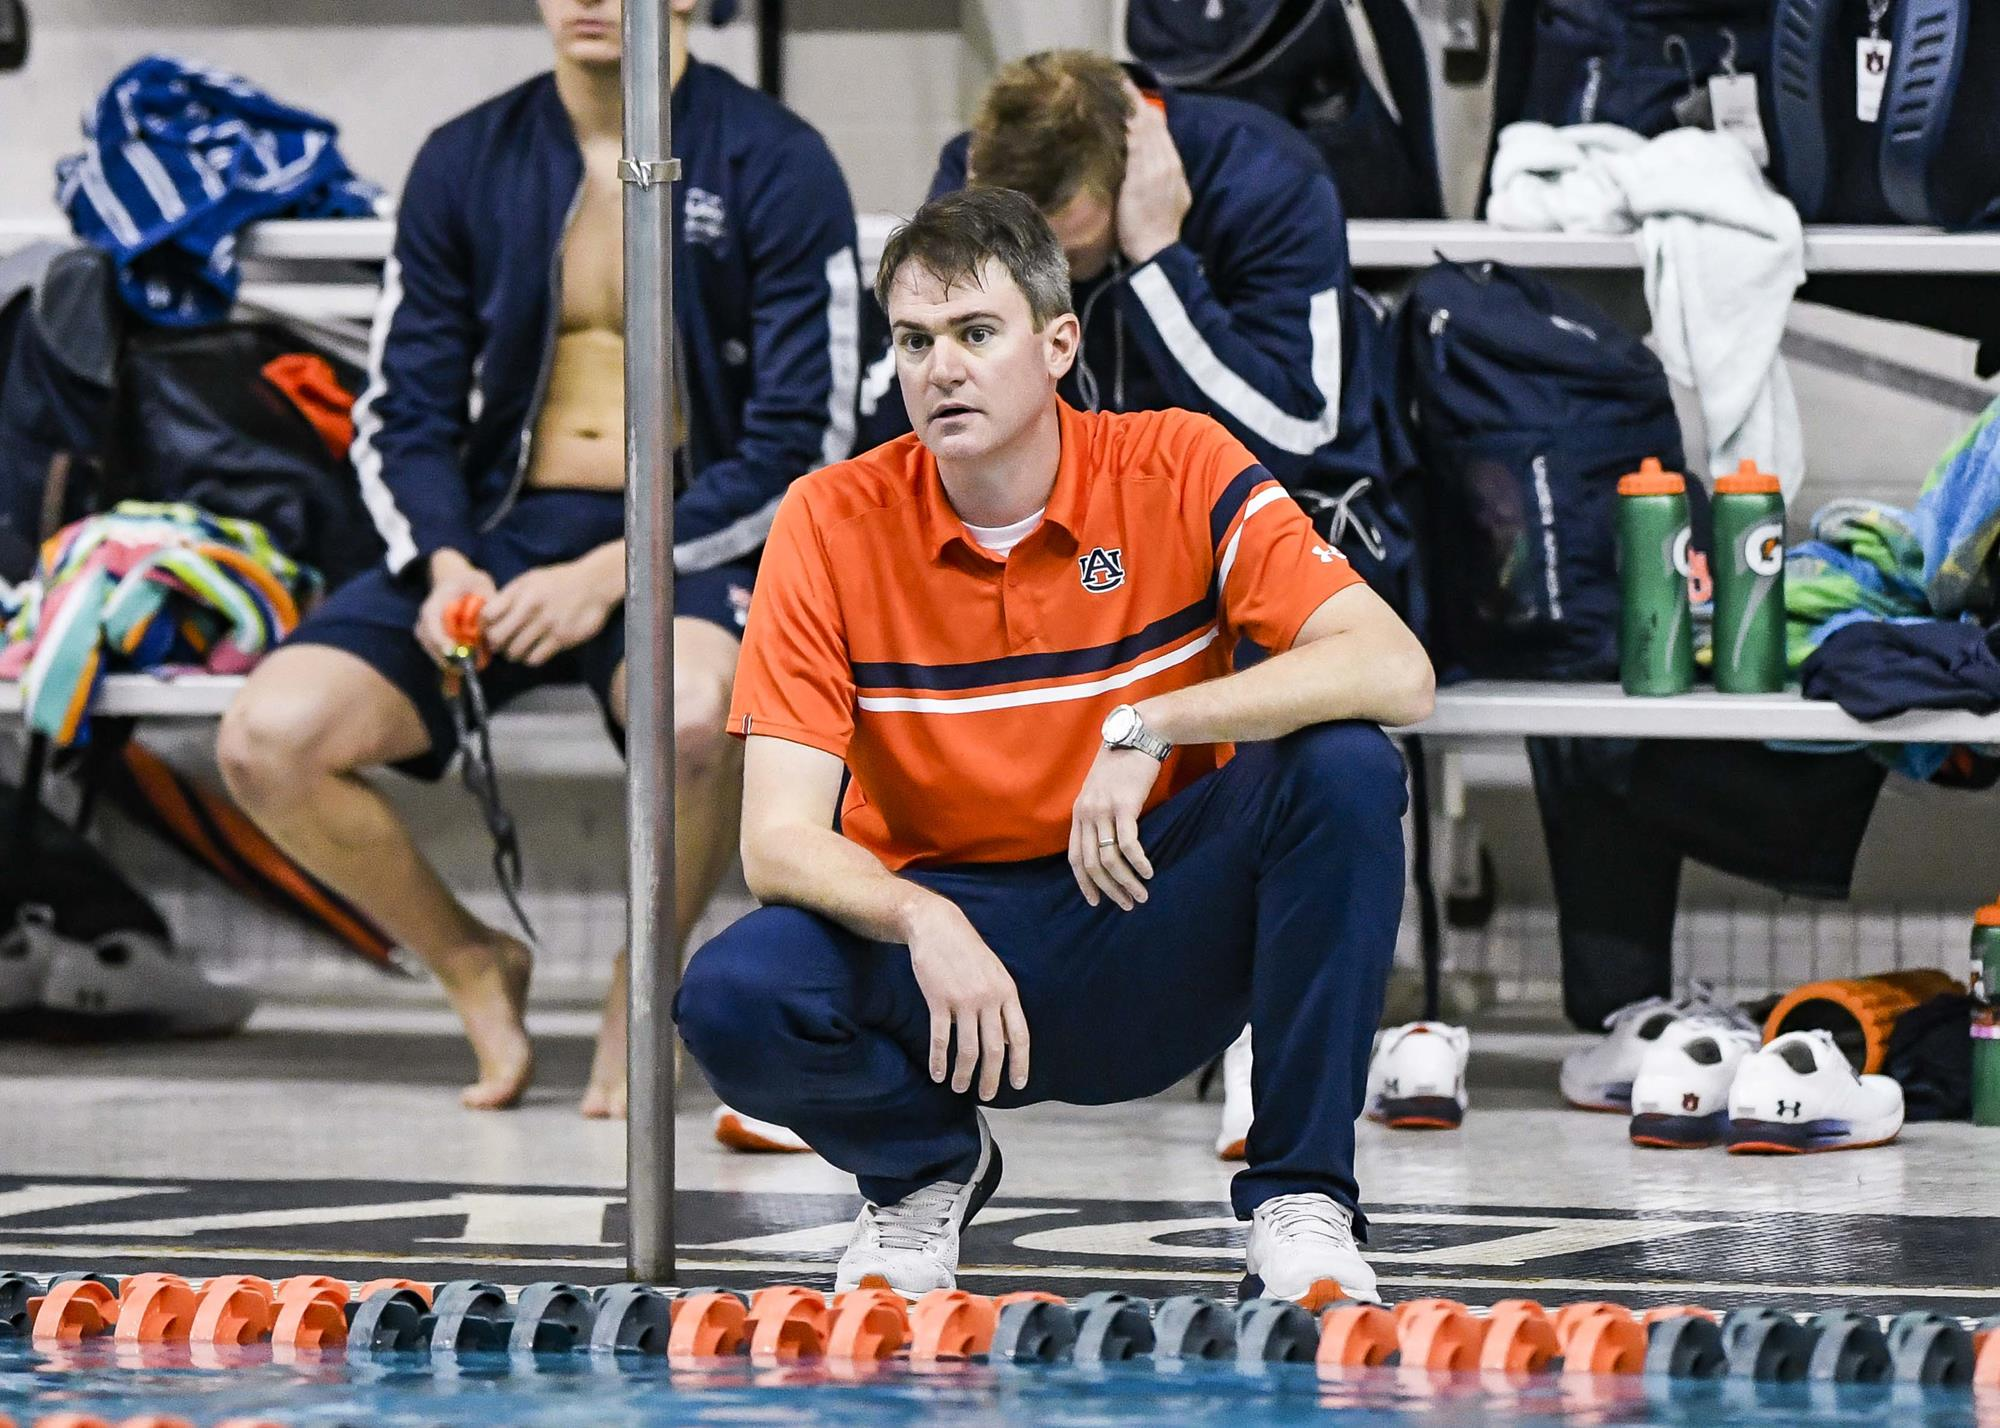 Auburn S&D programs to compete in Wolfpack Invite